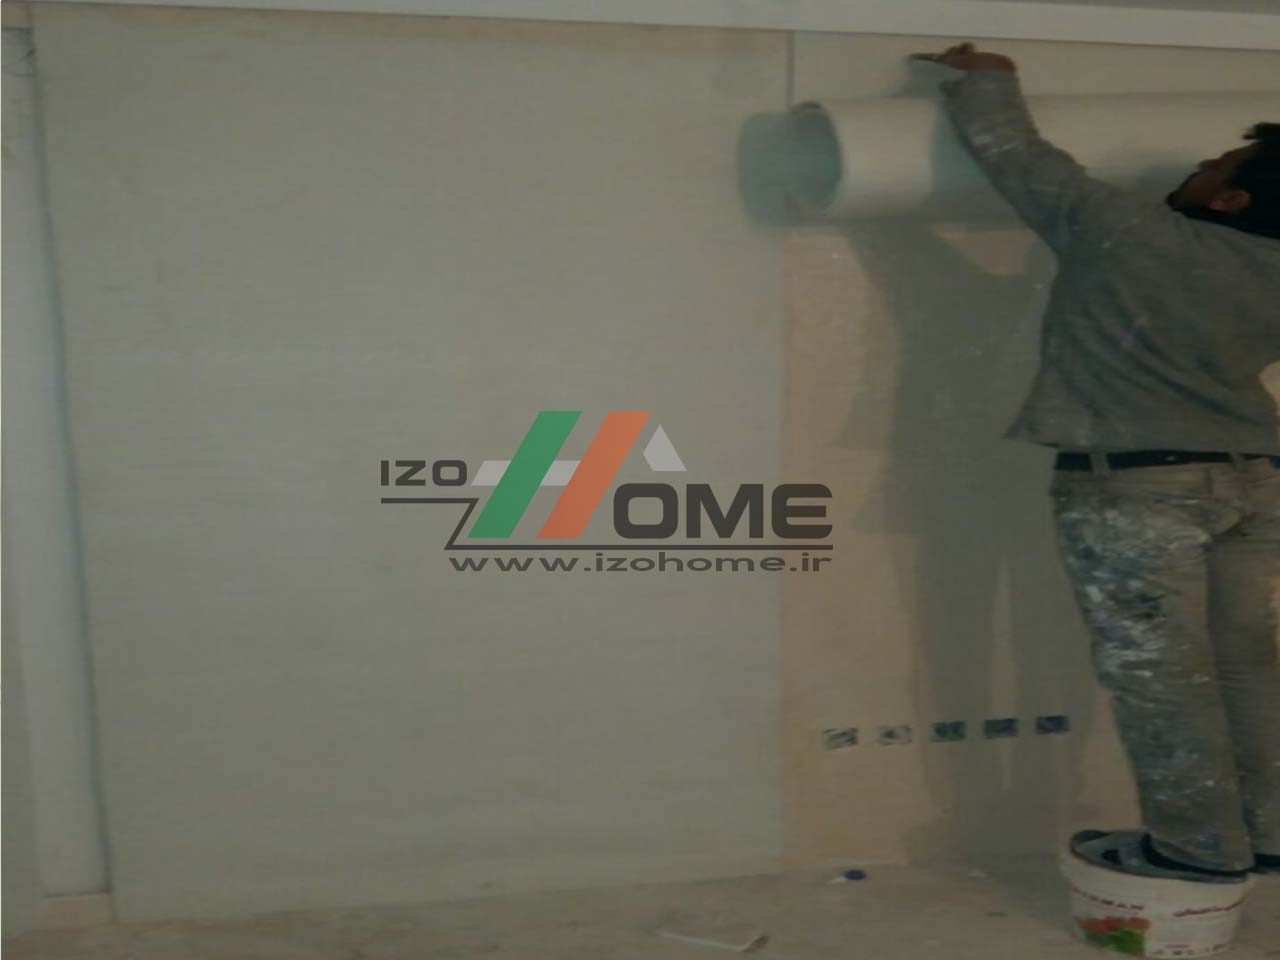 izohome60 1 - Sound insulation for the wall